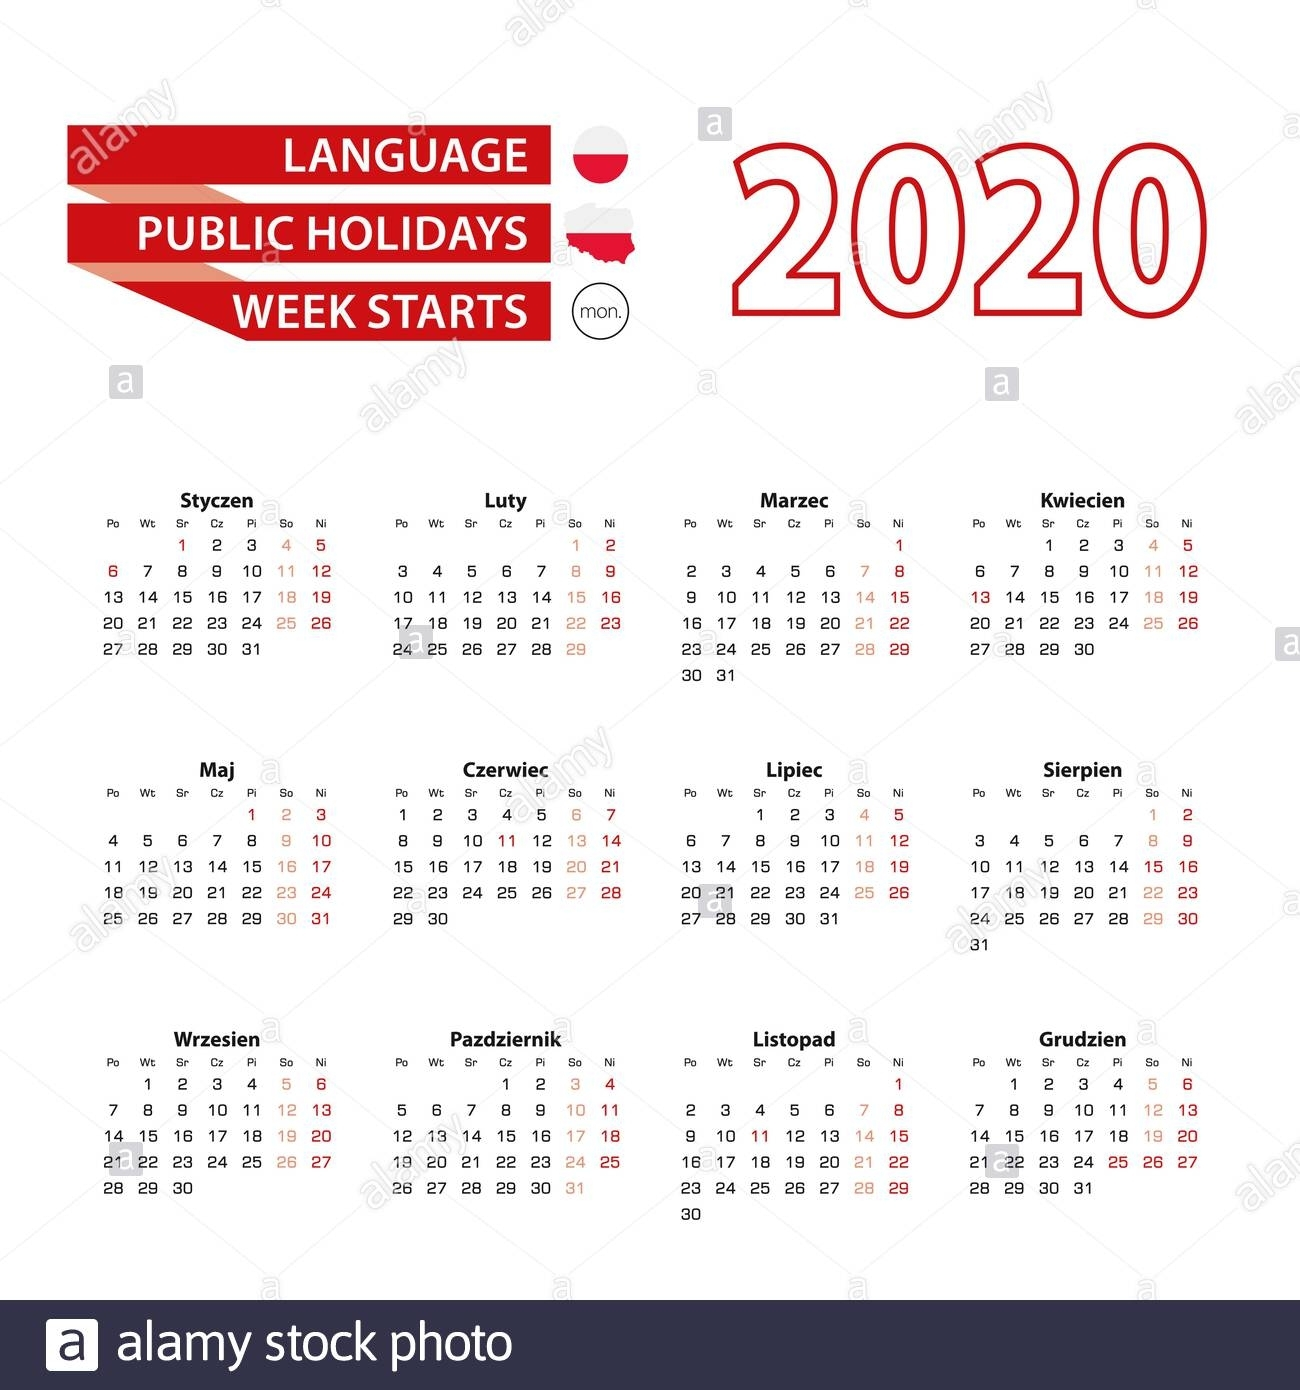 Calendar 2020 In Polish Language With Public Holidays The